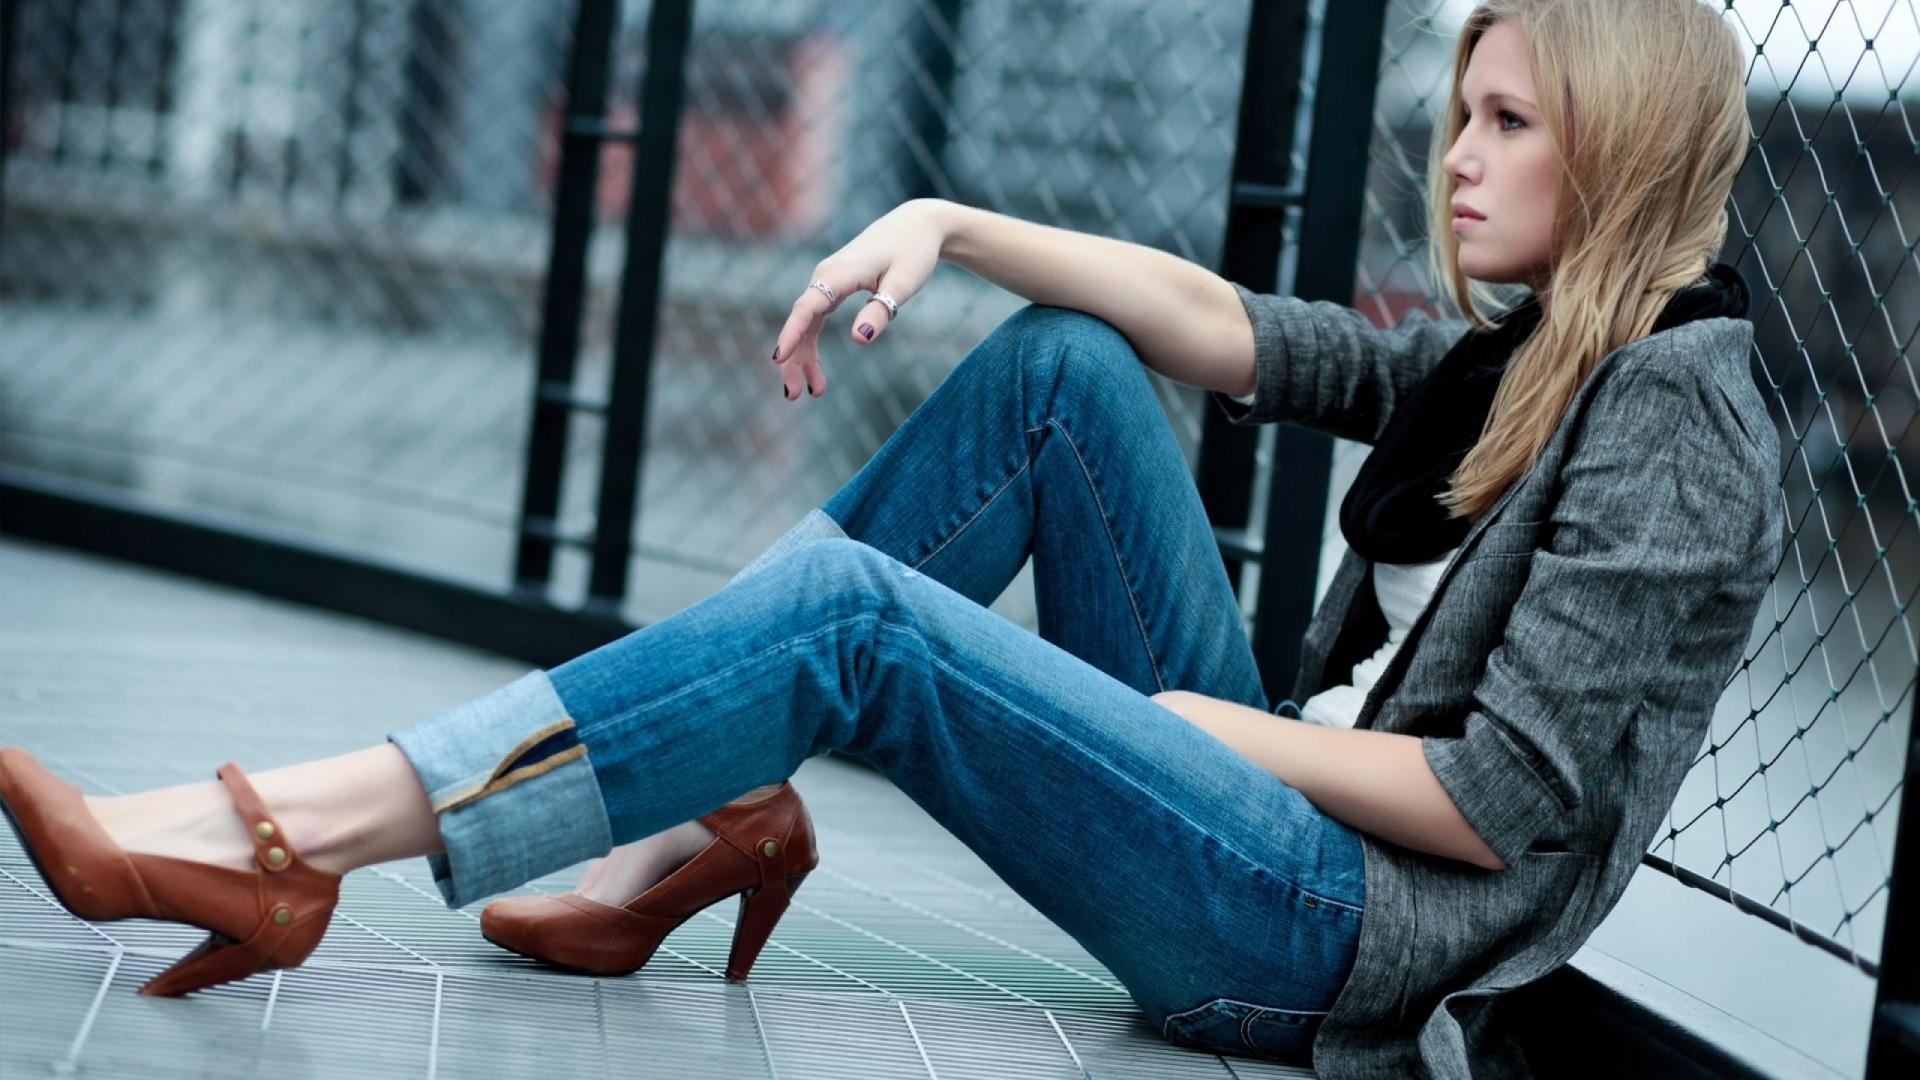 2013 Women Jeans Fashion 1080p HD   HD  Source HD Wallpaper